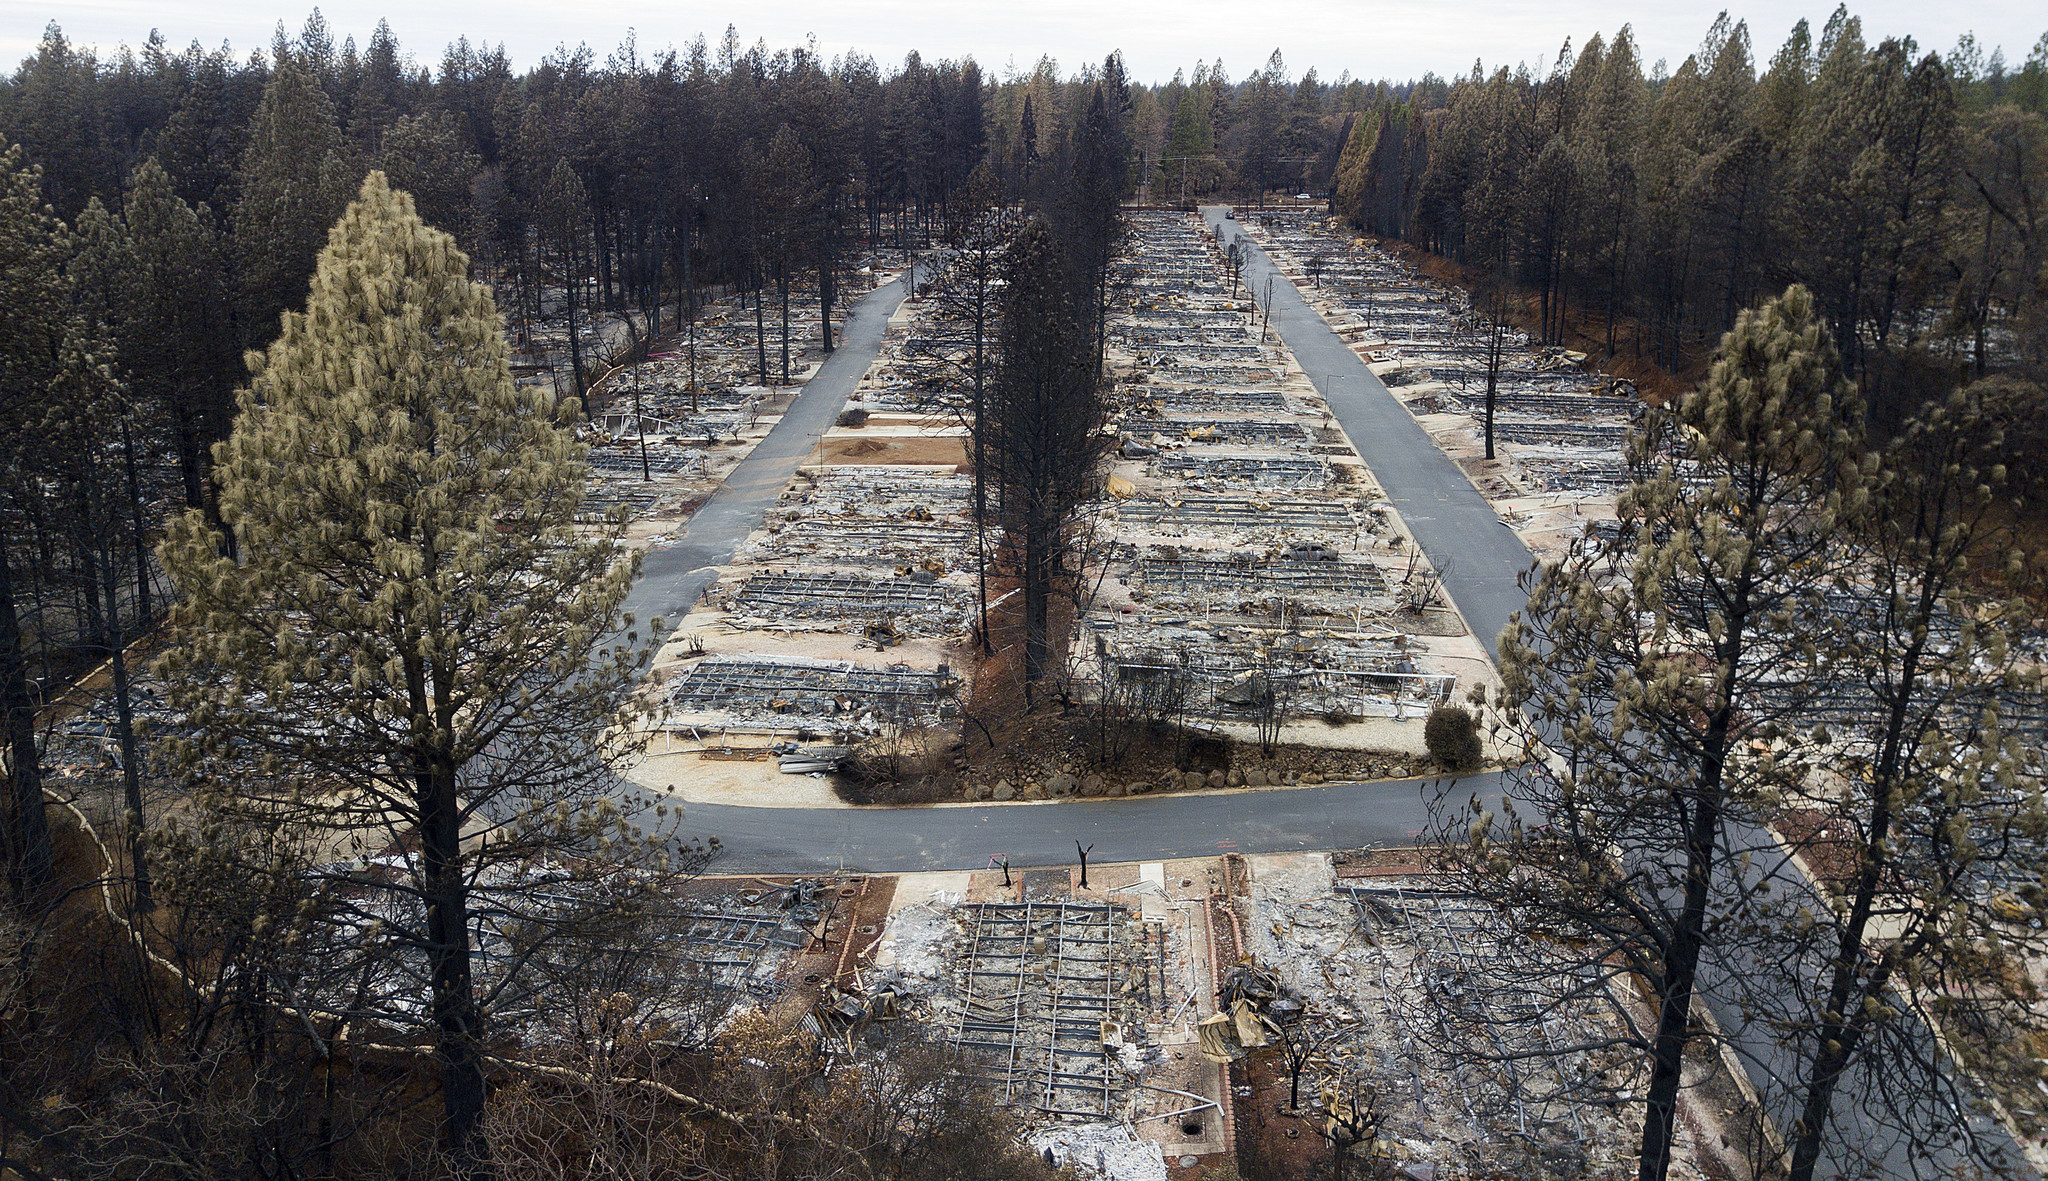 PG&E will plead guilty to 84 counts of involuntary manslaughter over monster 2018 Camp fire